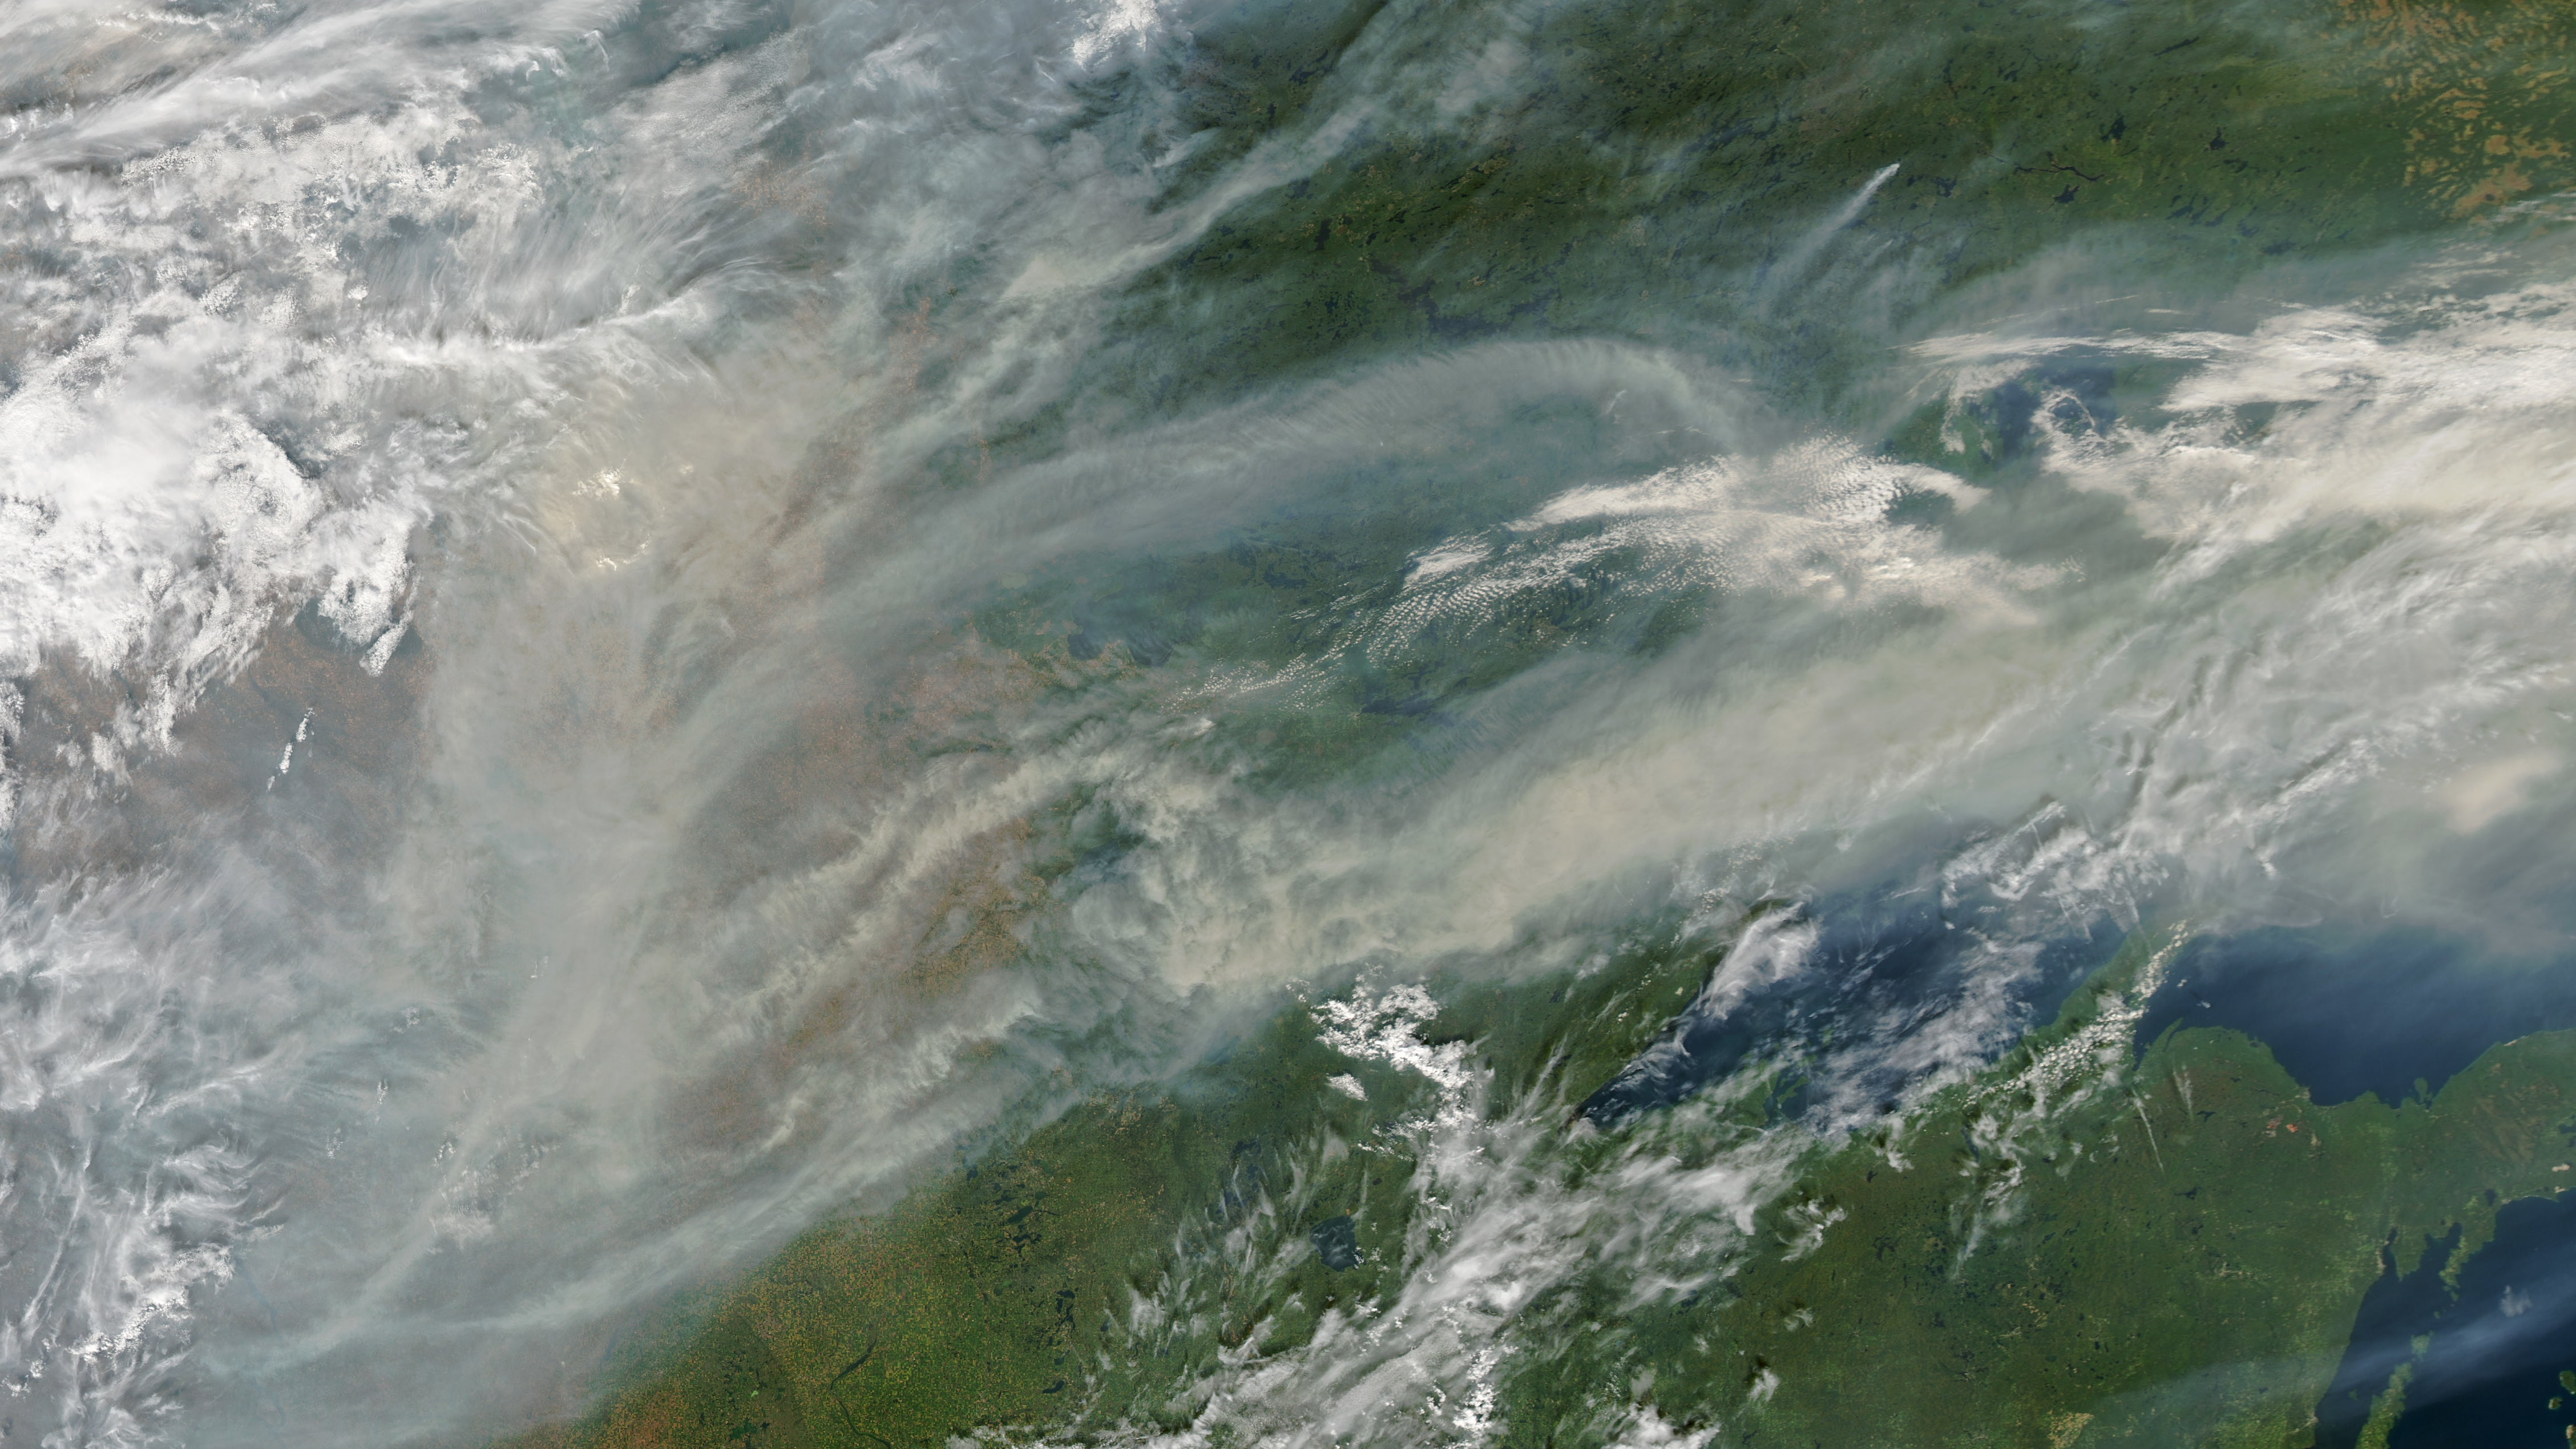 Huge Wafts Of Smoke From North American Bushfires Have Travelled All The Way To Europe